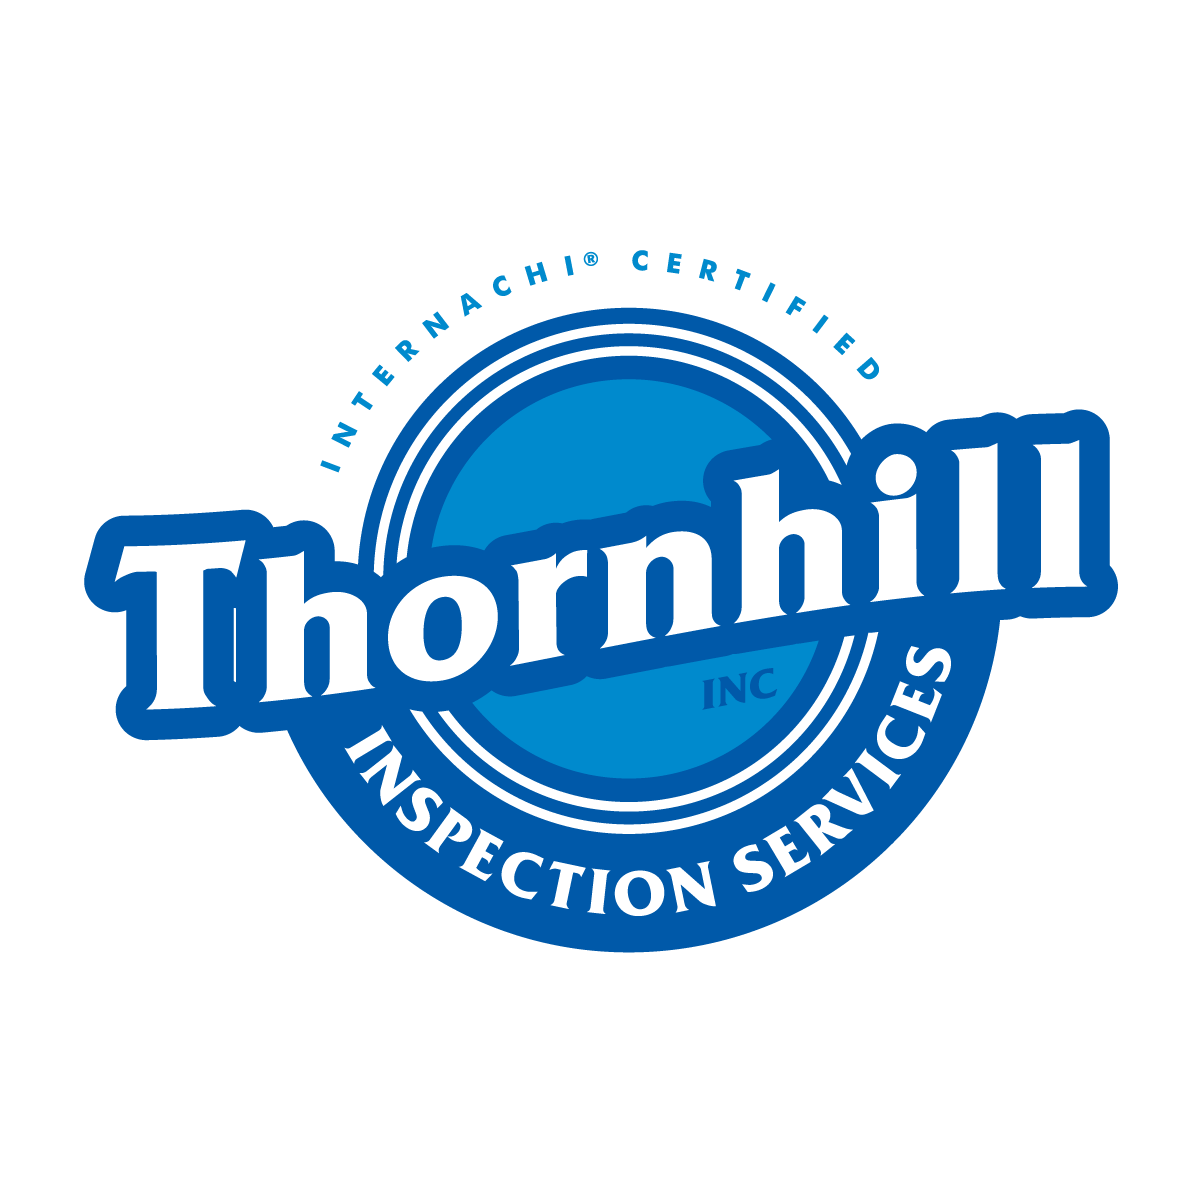 Thornhill Inspection Services Inc.